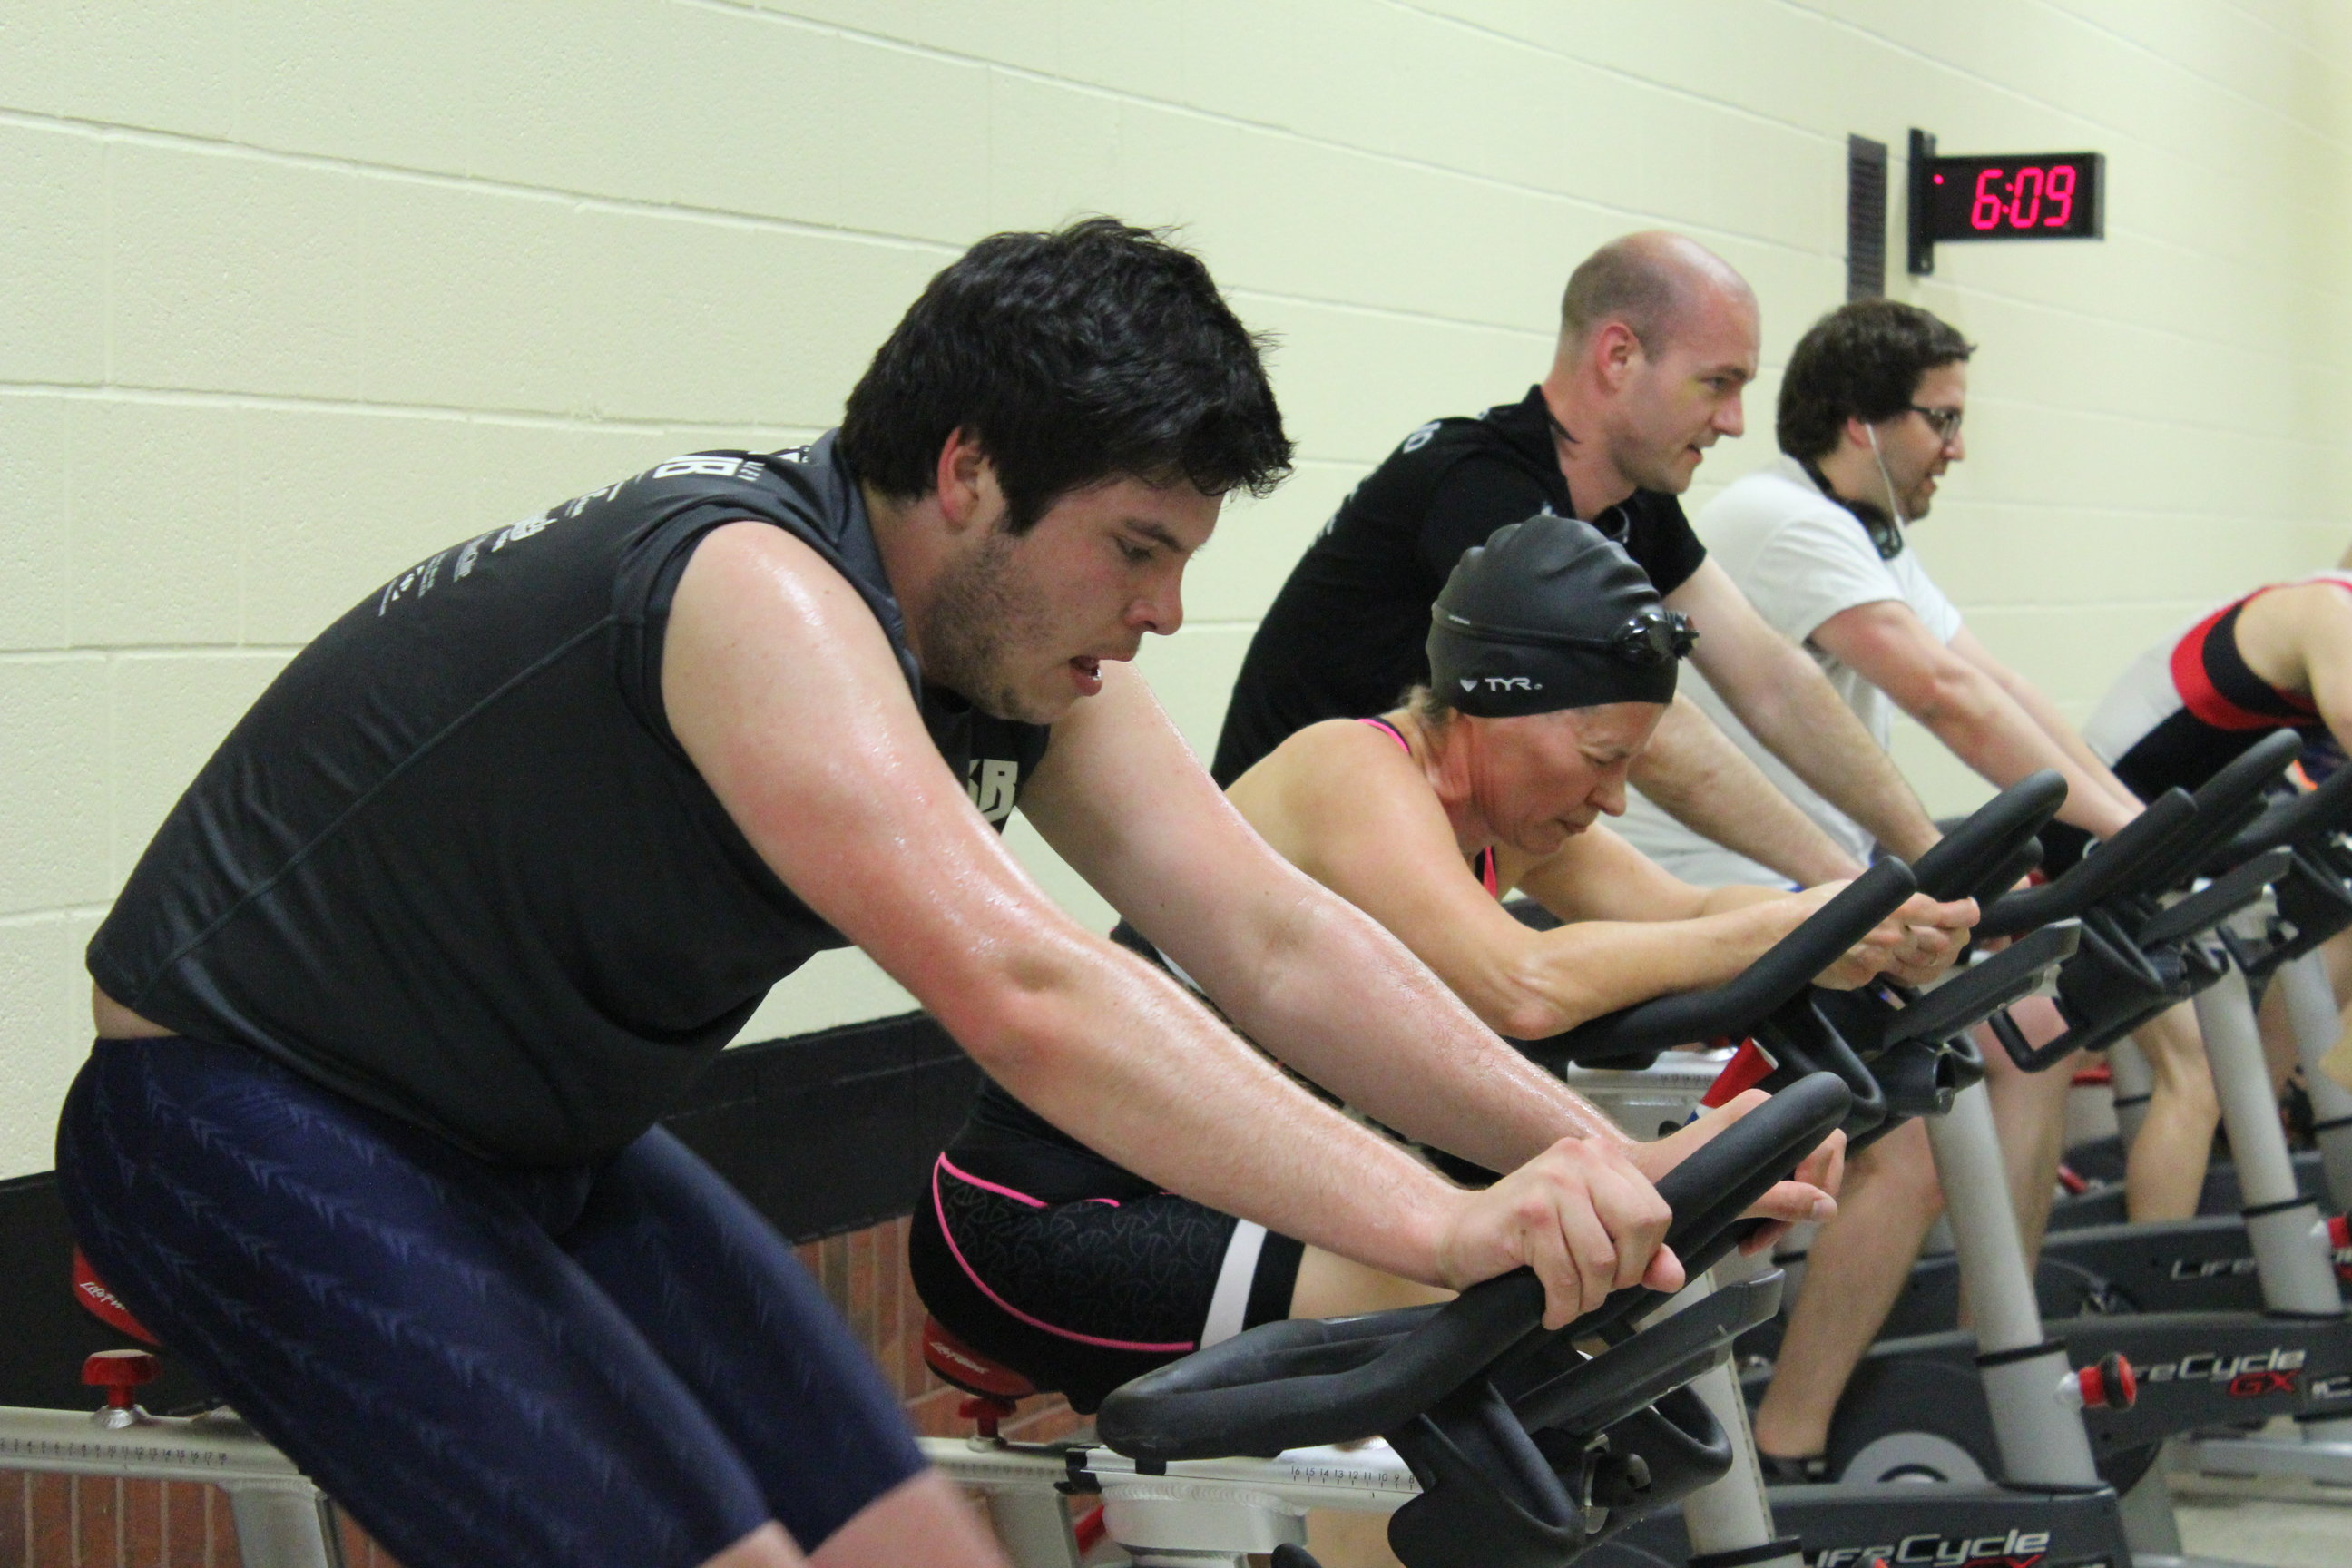 Group of people on stationary bikes. One woman in swim cap and goggles.